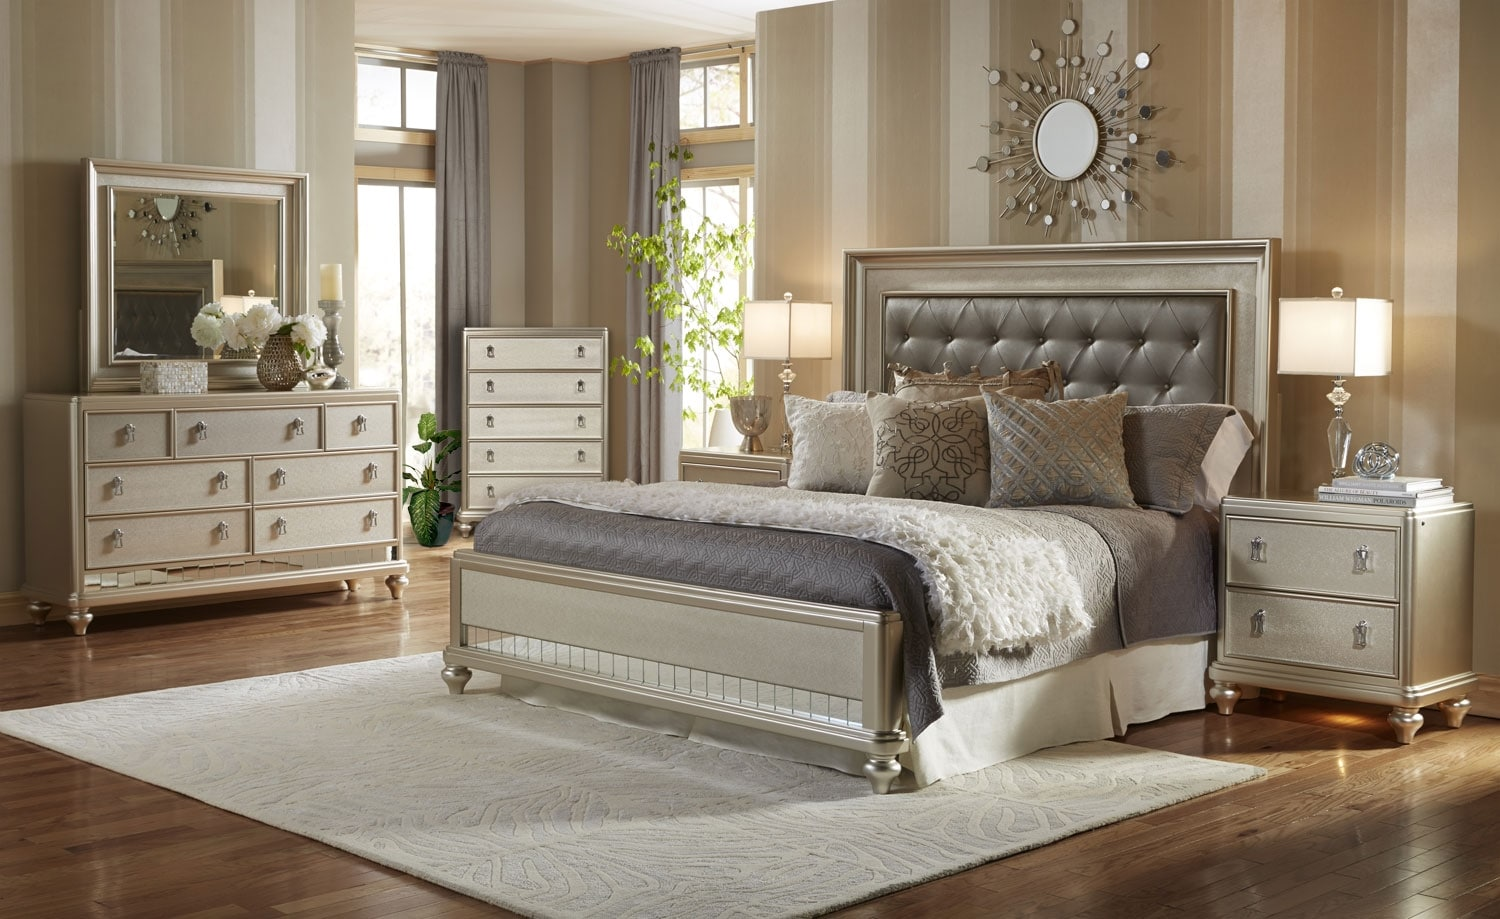 Queen Bedroom Furniture Sets Diva 8 Piece Queen Bedroom Package The Brick